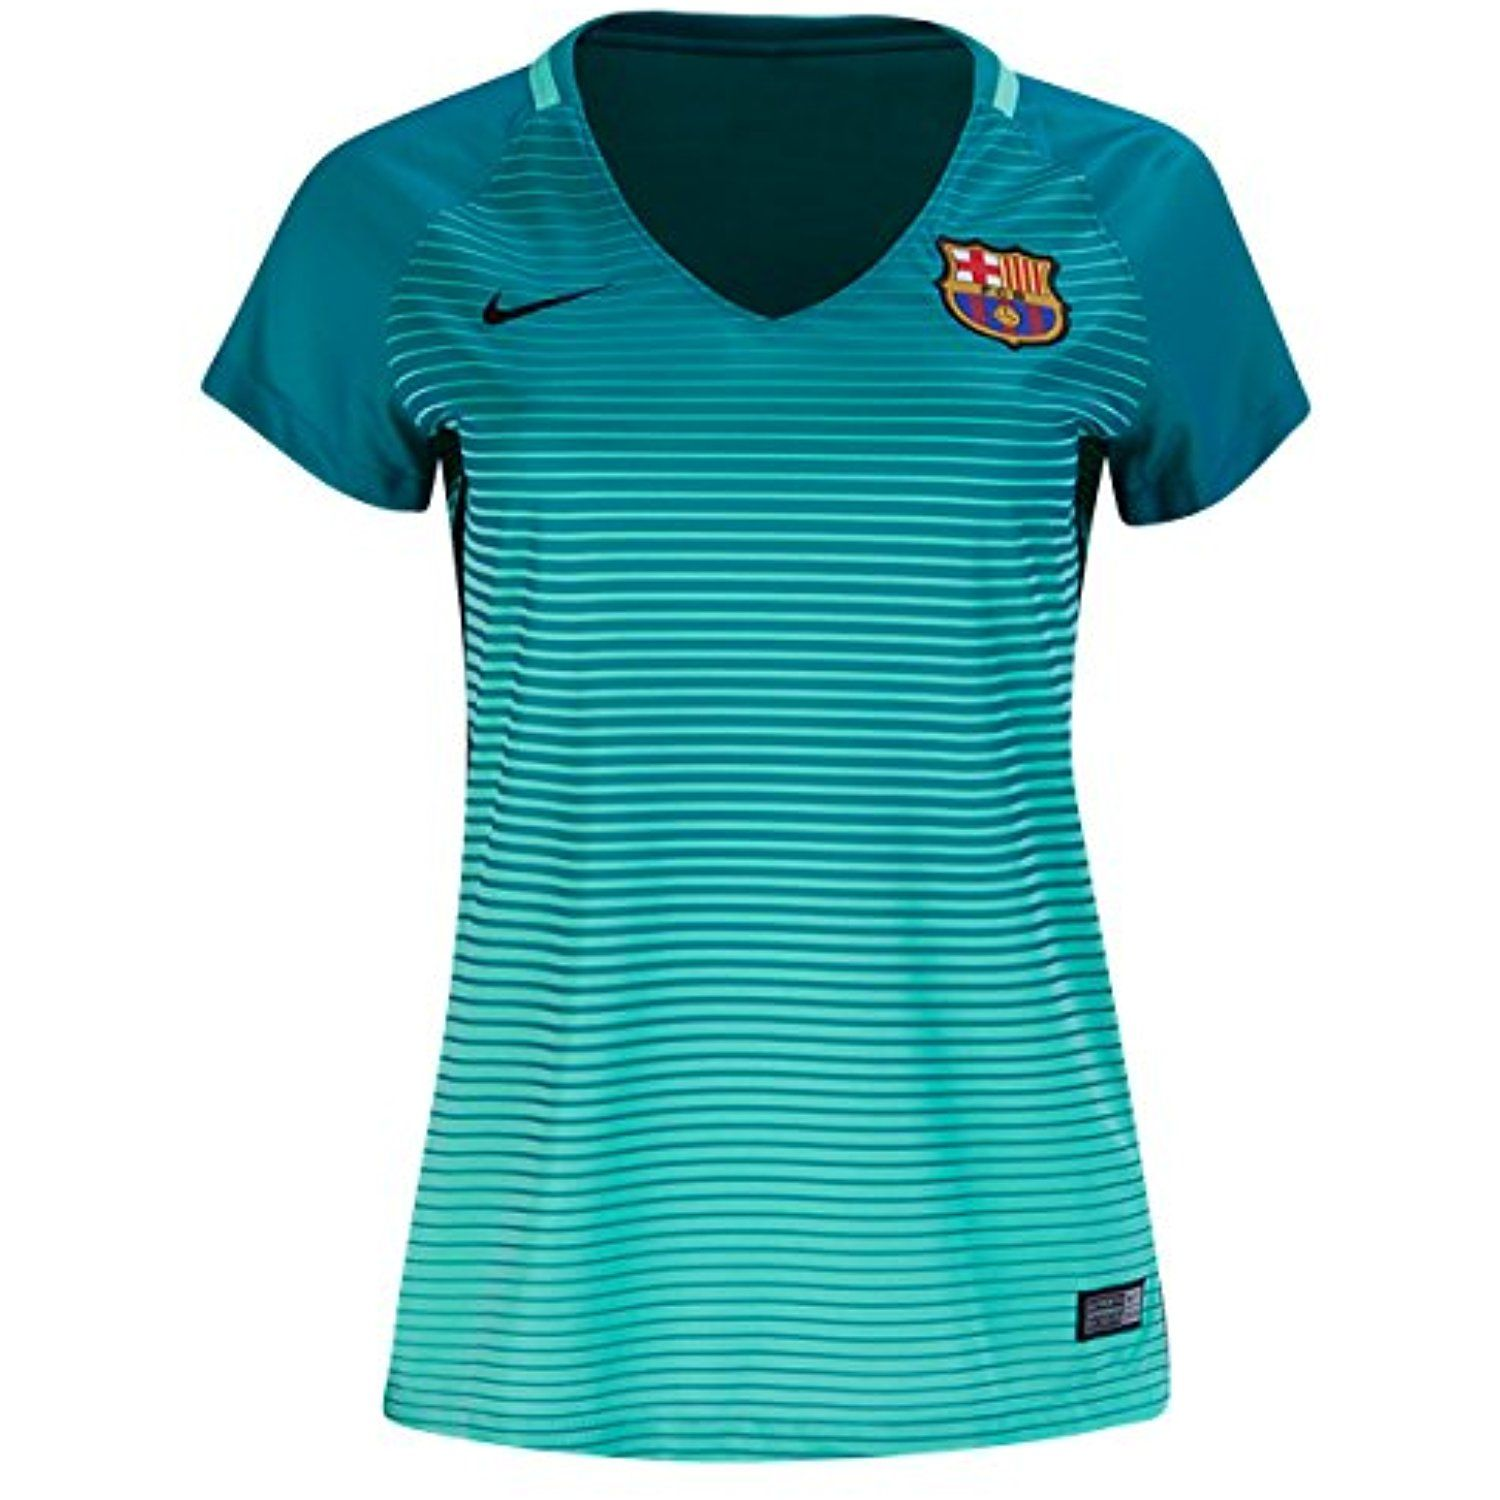 ... Women s Barcelona Fc 16 17 Third Jersey Green Glow Energy Black   You  can get more details by clicking on the image. (This is an affiliate link)   Shirts 53646627b8